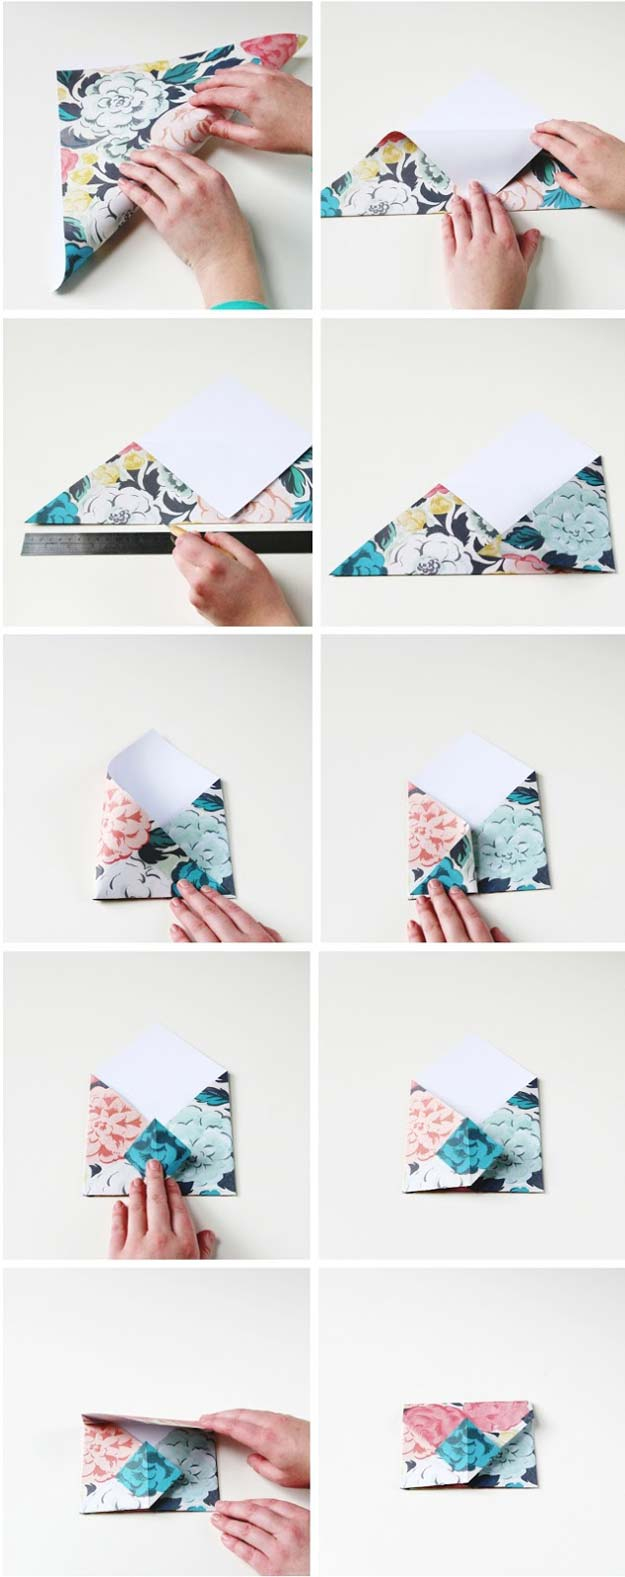 Best Origami Tutorials - Origami Envelops- Easy DIY Origami Tutorial Projects for With Instructions for Flowers, Dog, Gift Box, Star, Owl, Buttlerfly, Heart and Bookmark, Animals - Fun Paper Crafts for Teens, Kids and Adults http://diyprojectsforteens.com/best-origami-tutorials